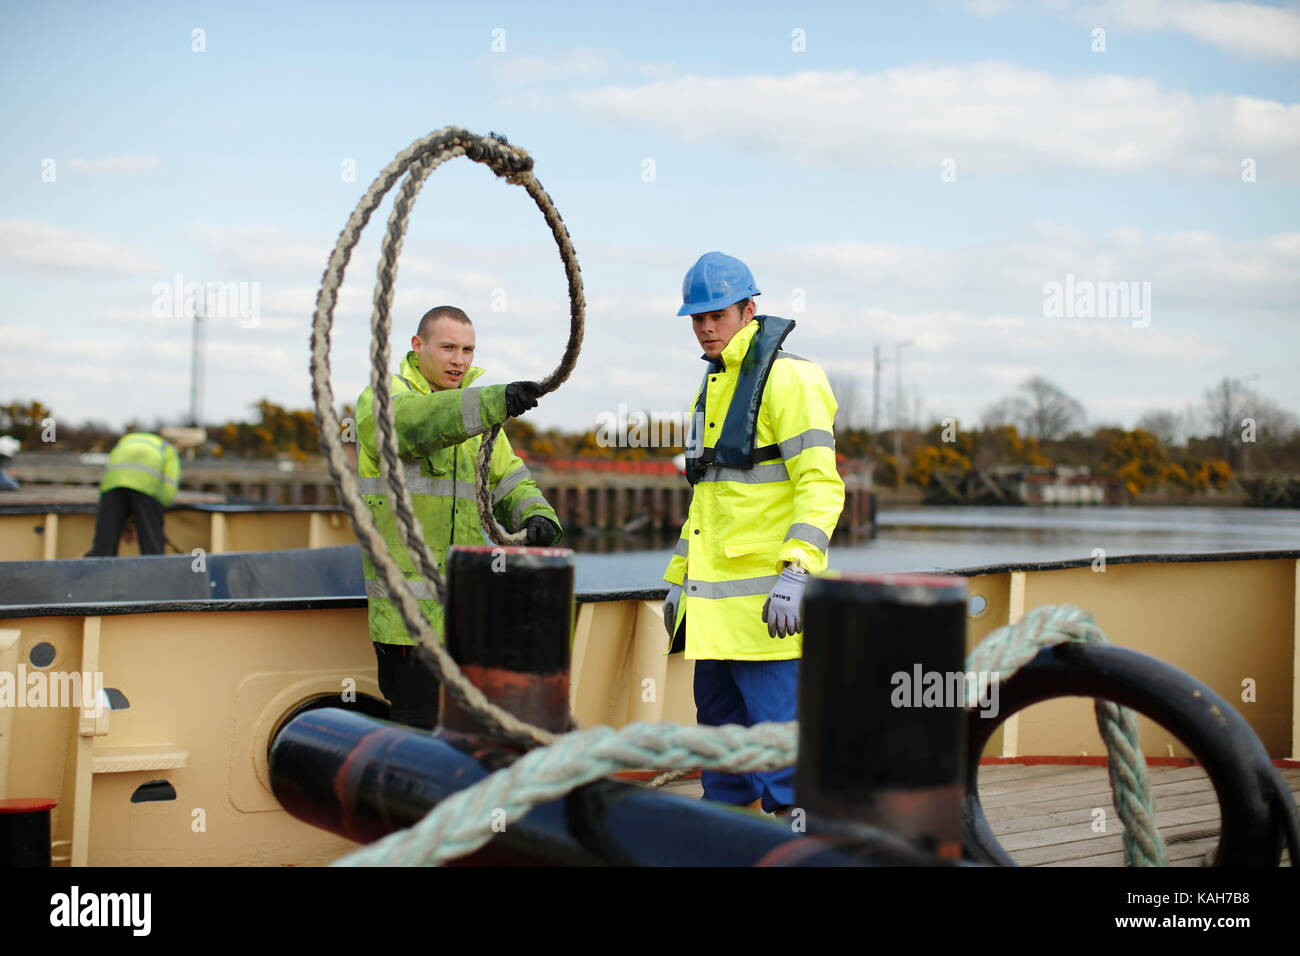 Mersey Tug Stock Photos & Mersey Tug Stock Images - Alamy